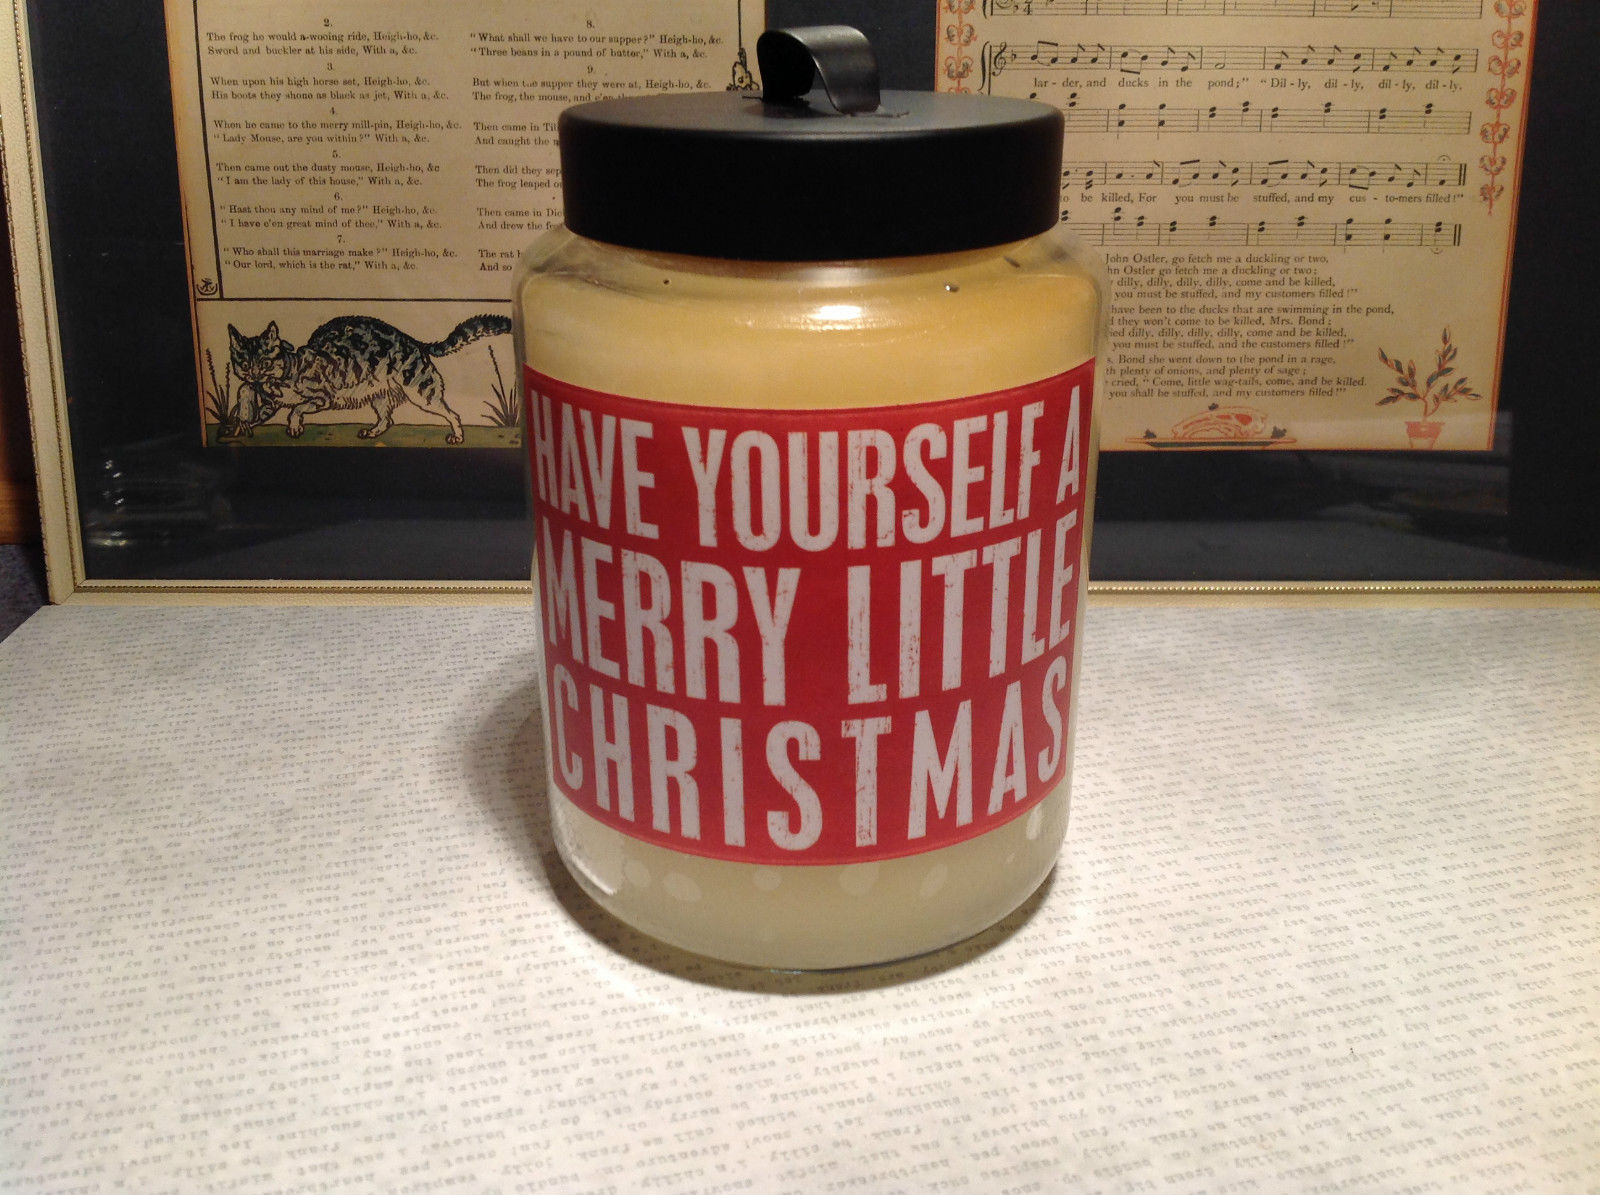 Have Yourself A Merry Little Christmas Sugar Cook Jar Candle Six Inches High